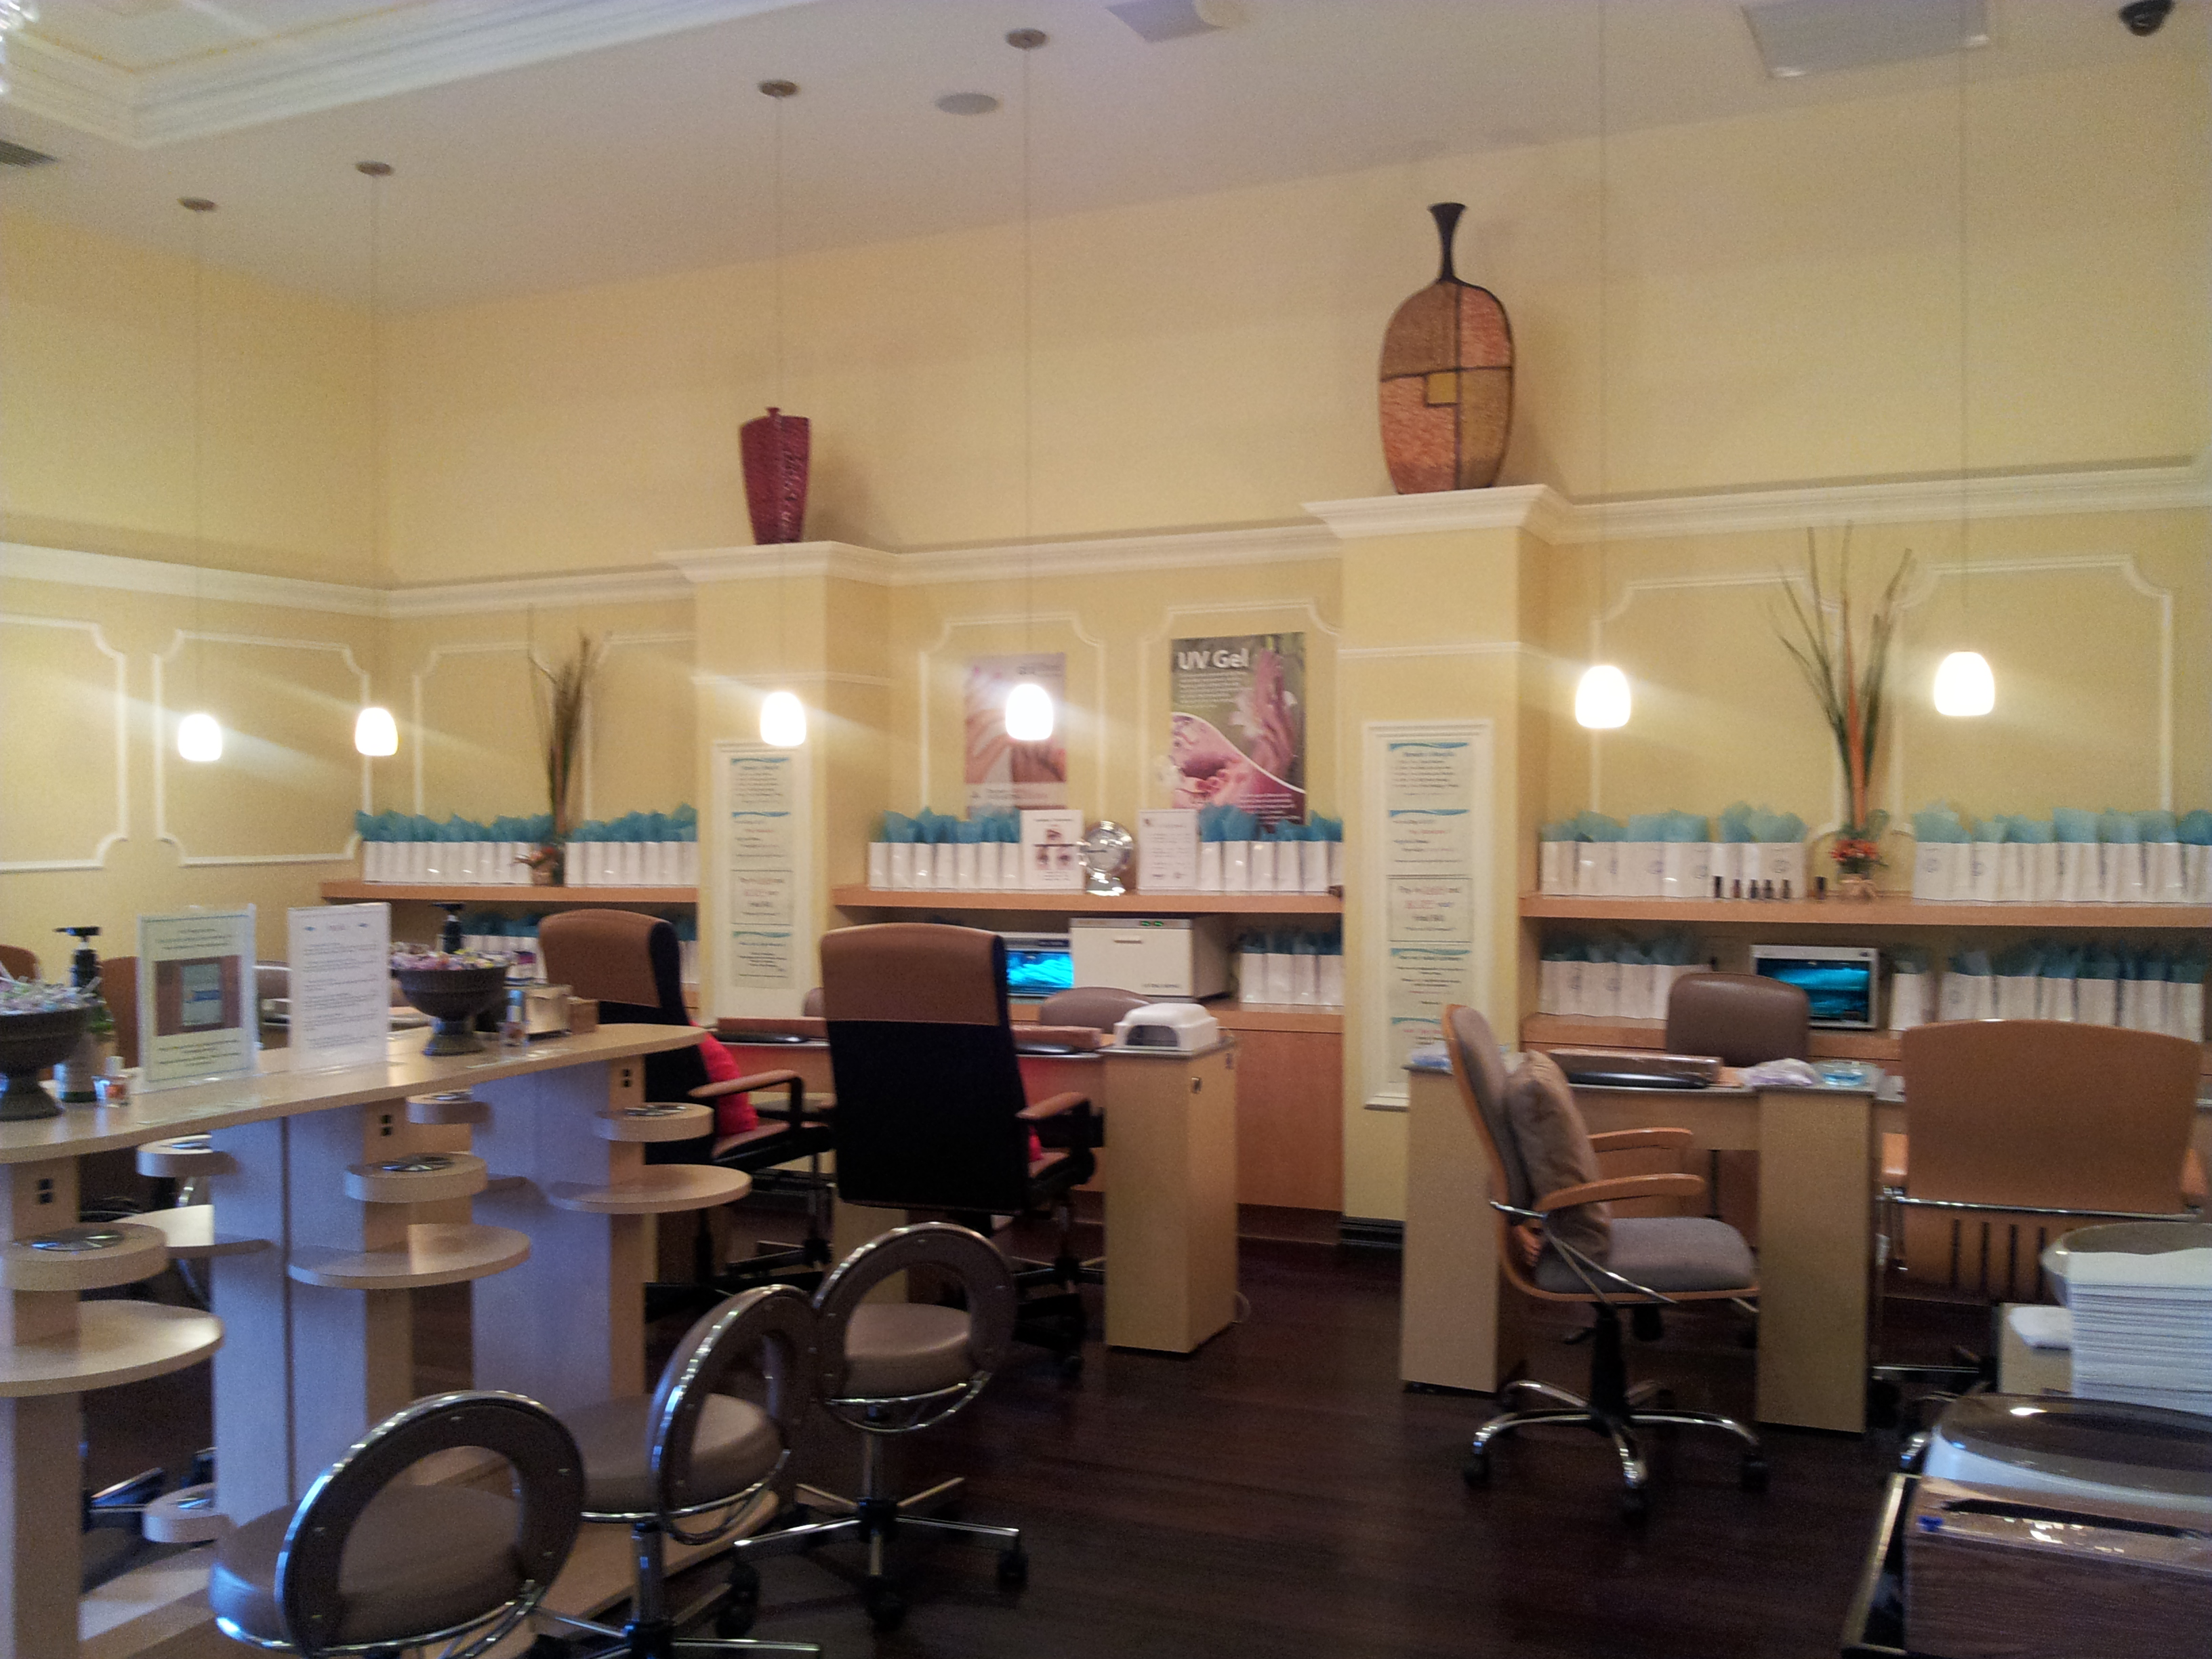 Blue Lotus Nail Spa 350 Bridgeport Ave, Shelton, CT 06484 - YP.com